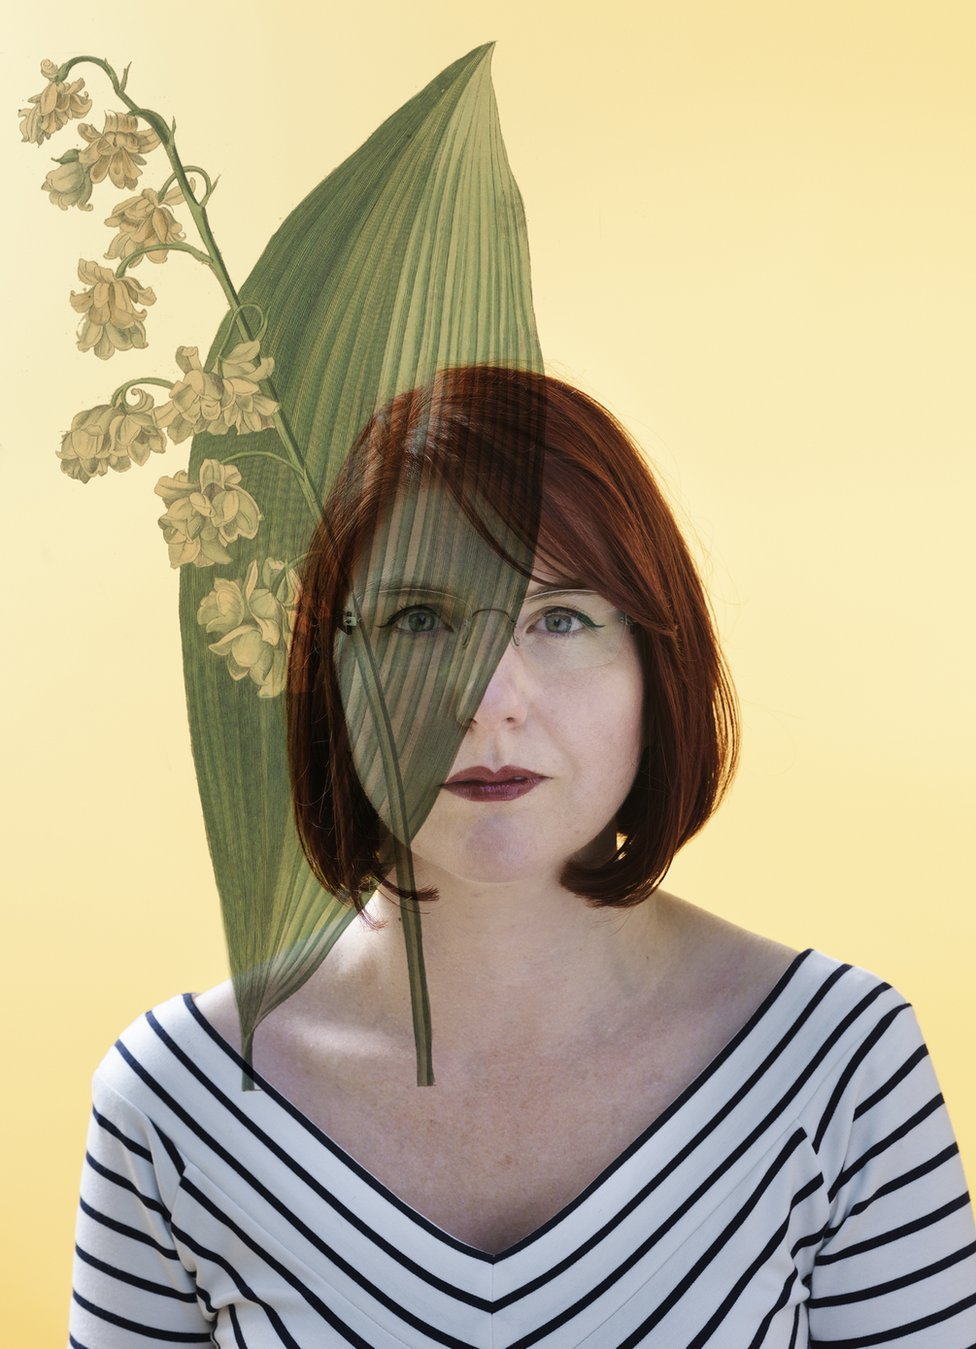 A portrait of a woman with her face partially covered by a leaf.